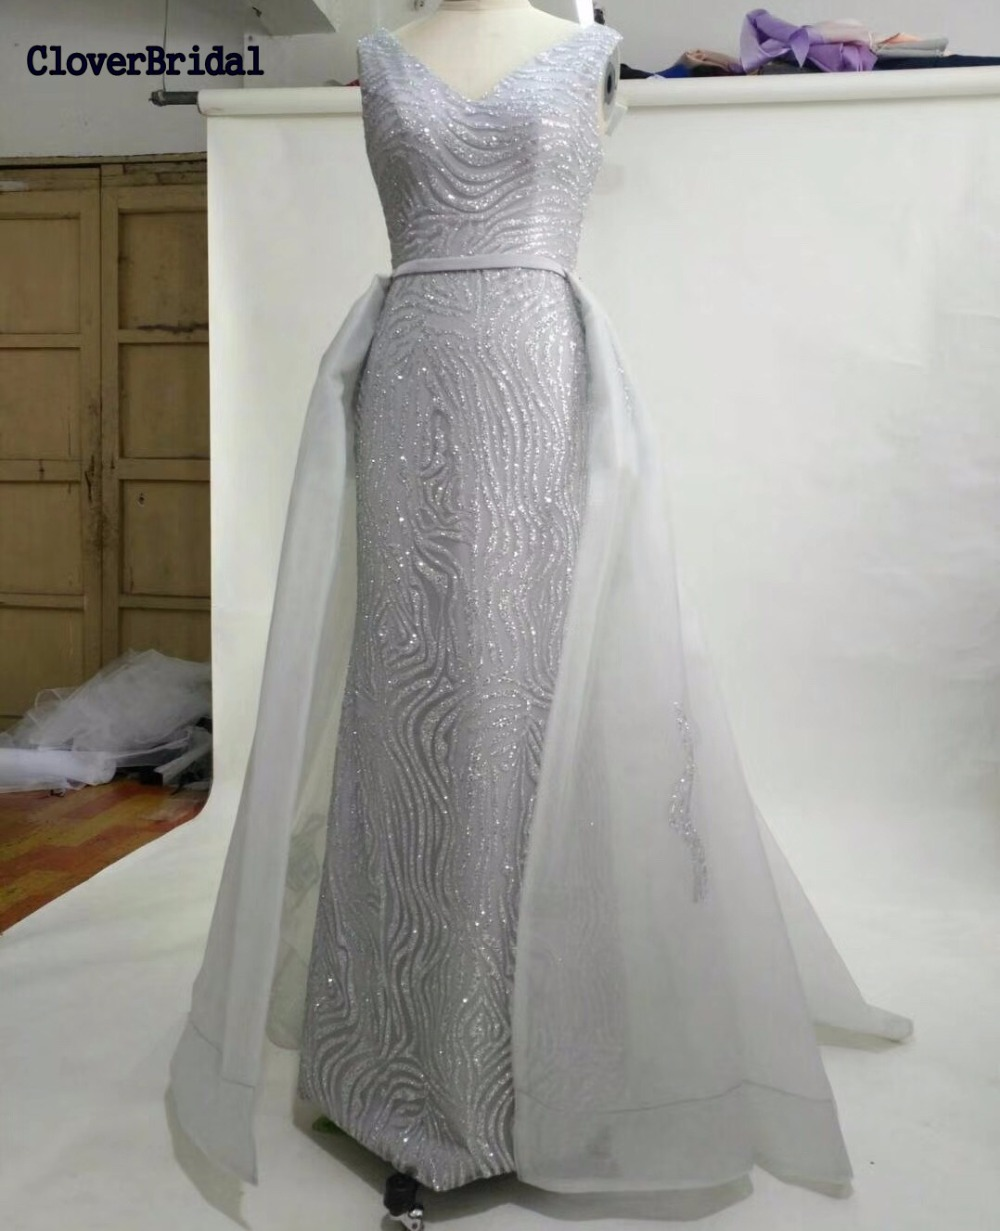 CloverBridal 2017 new mermaid long train silver   dress   for graduation shinning luxury glitter bling   prom     dresses   with outerskirt